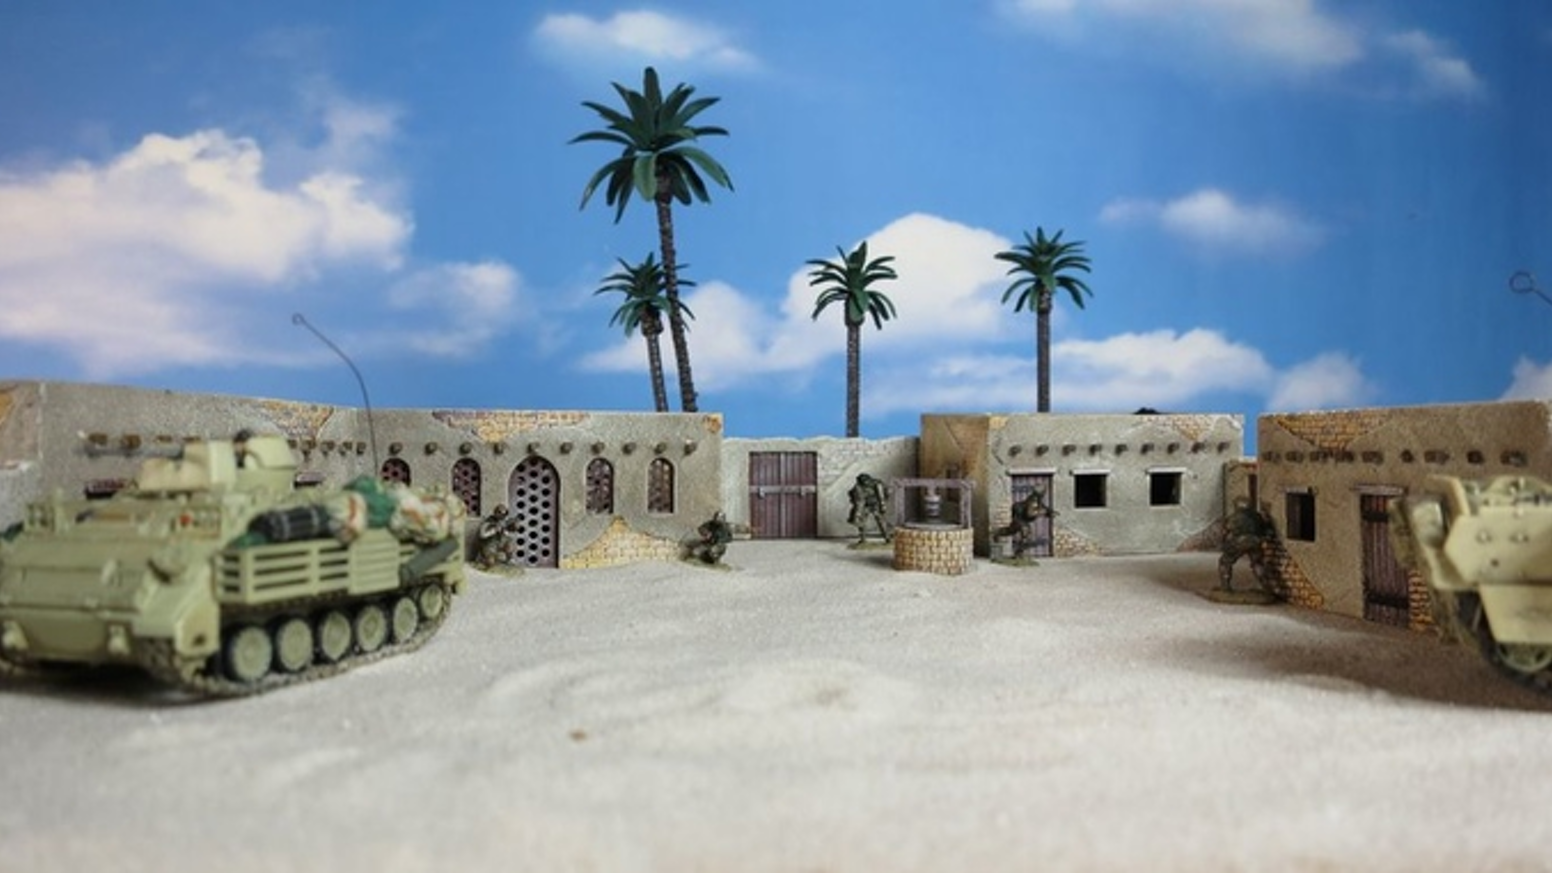 Print your own rural Arabic buildings. Files for Arabic buildings. With walls, a well. For all periods. Scale 15mm to 28mm. Much more terrain with reached stretchgoals